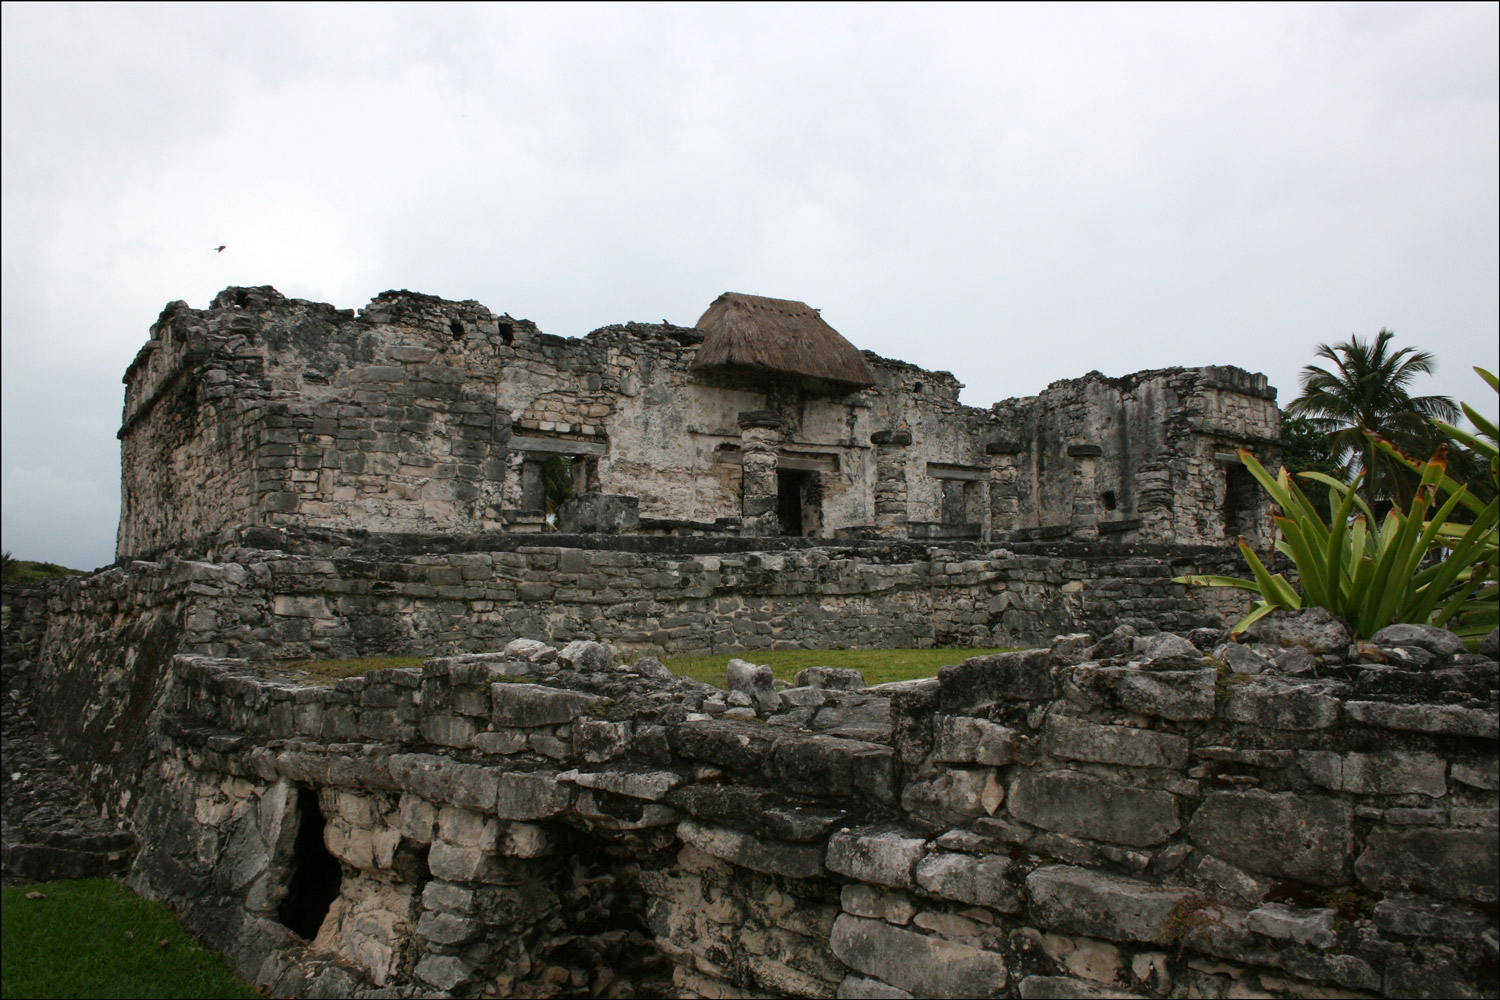 The House of the Halach Uinic in Tulum - 2